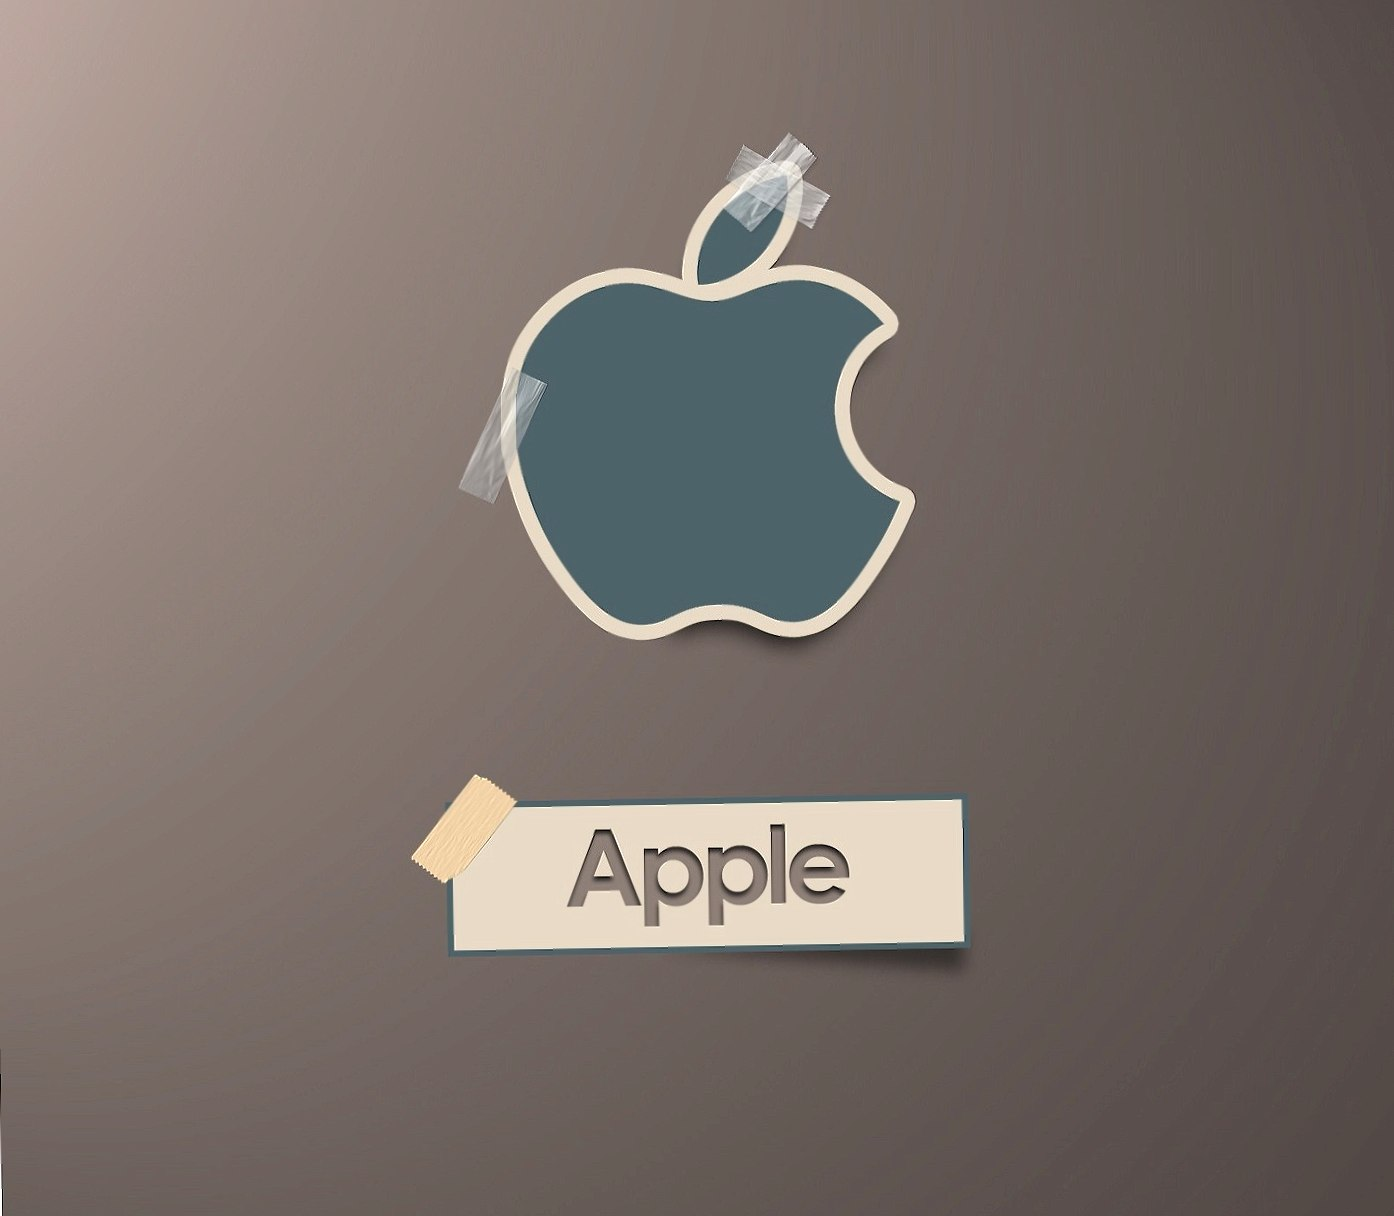 Apple logo wallpapers HD quality